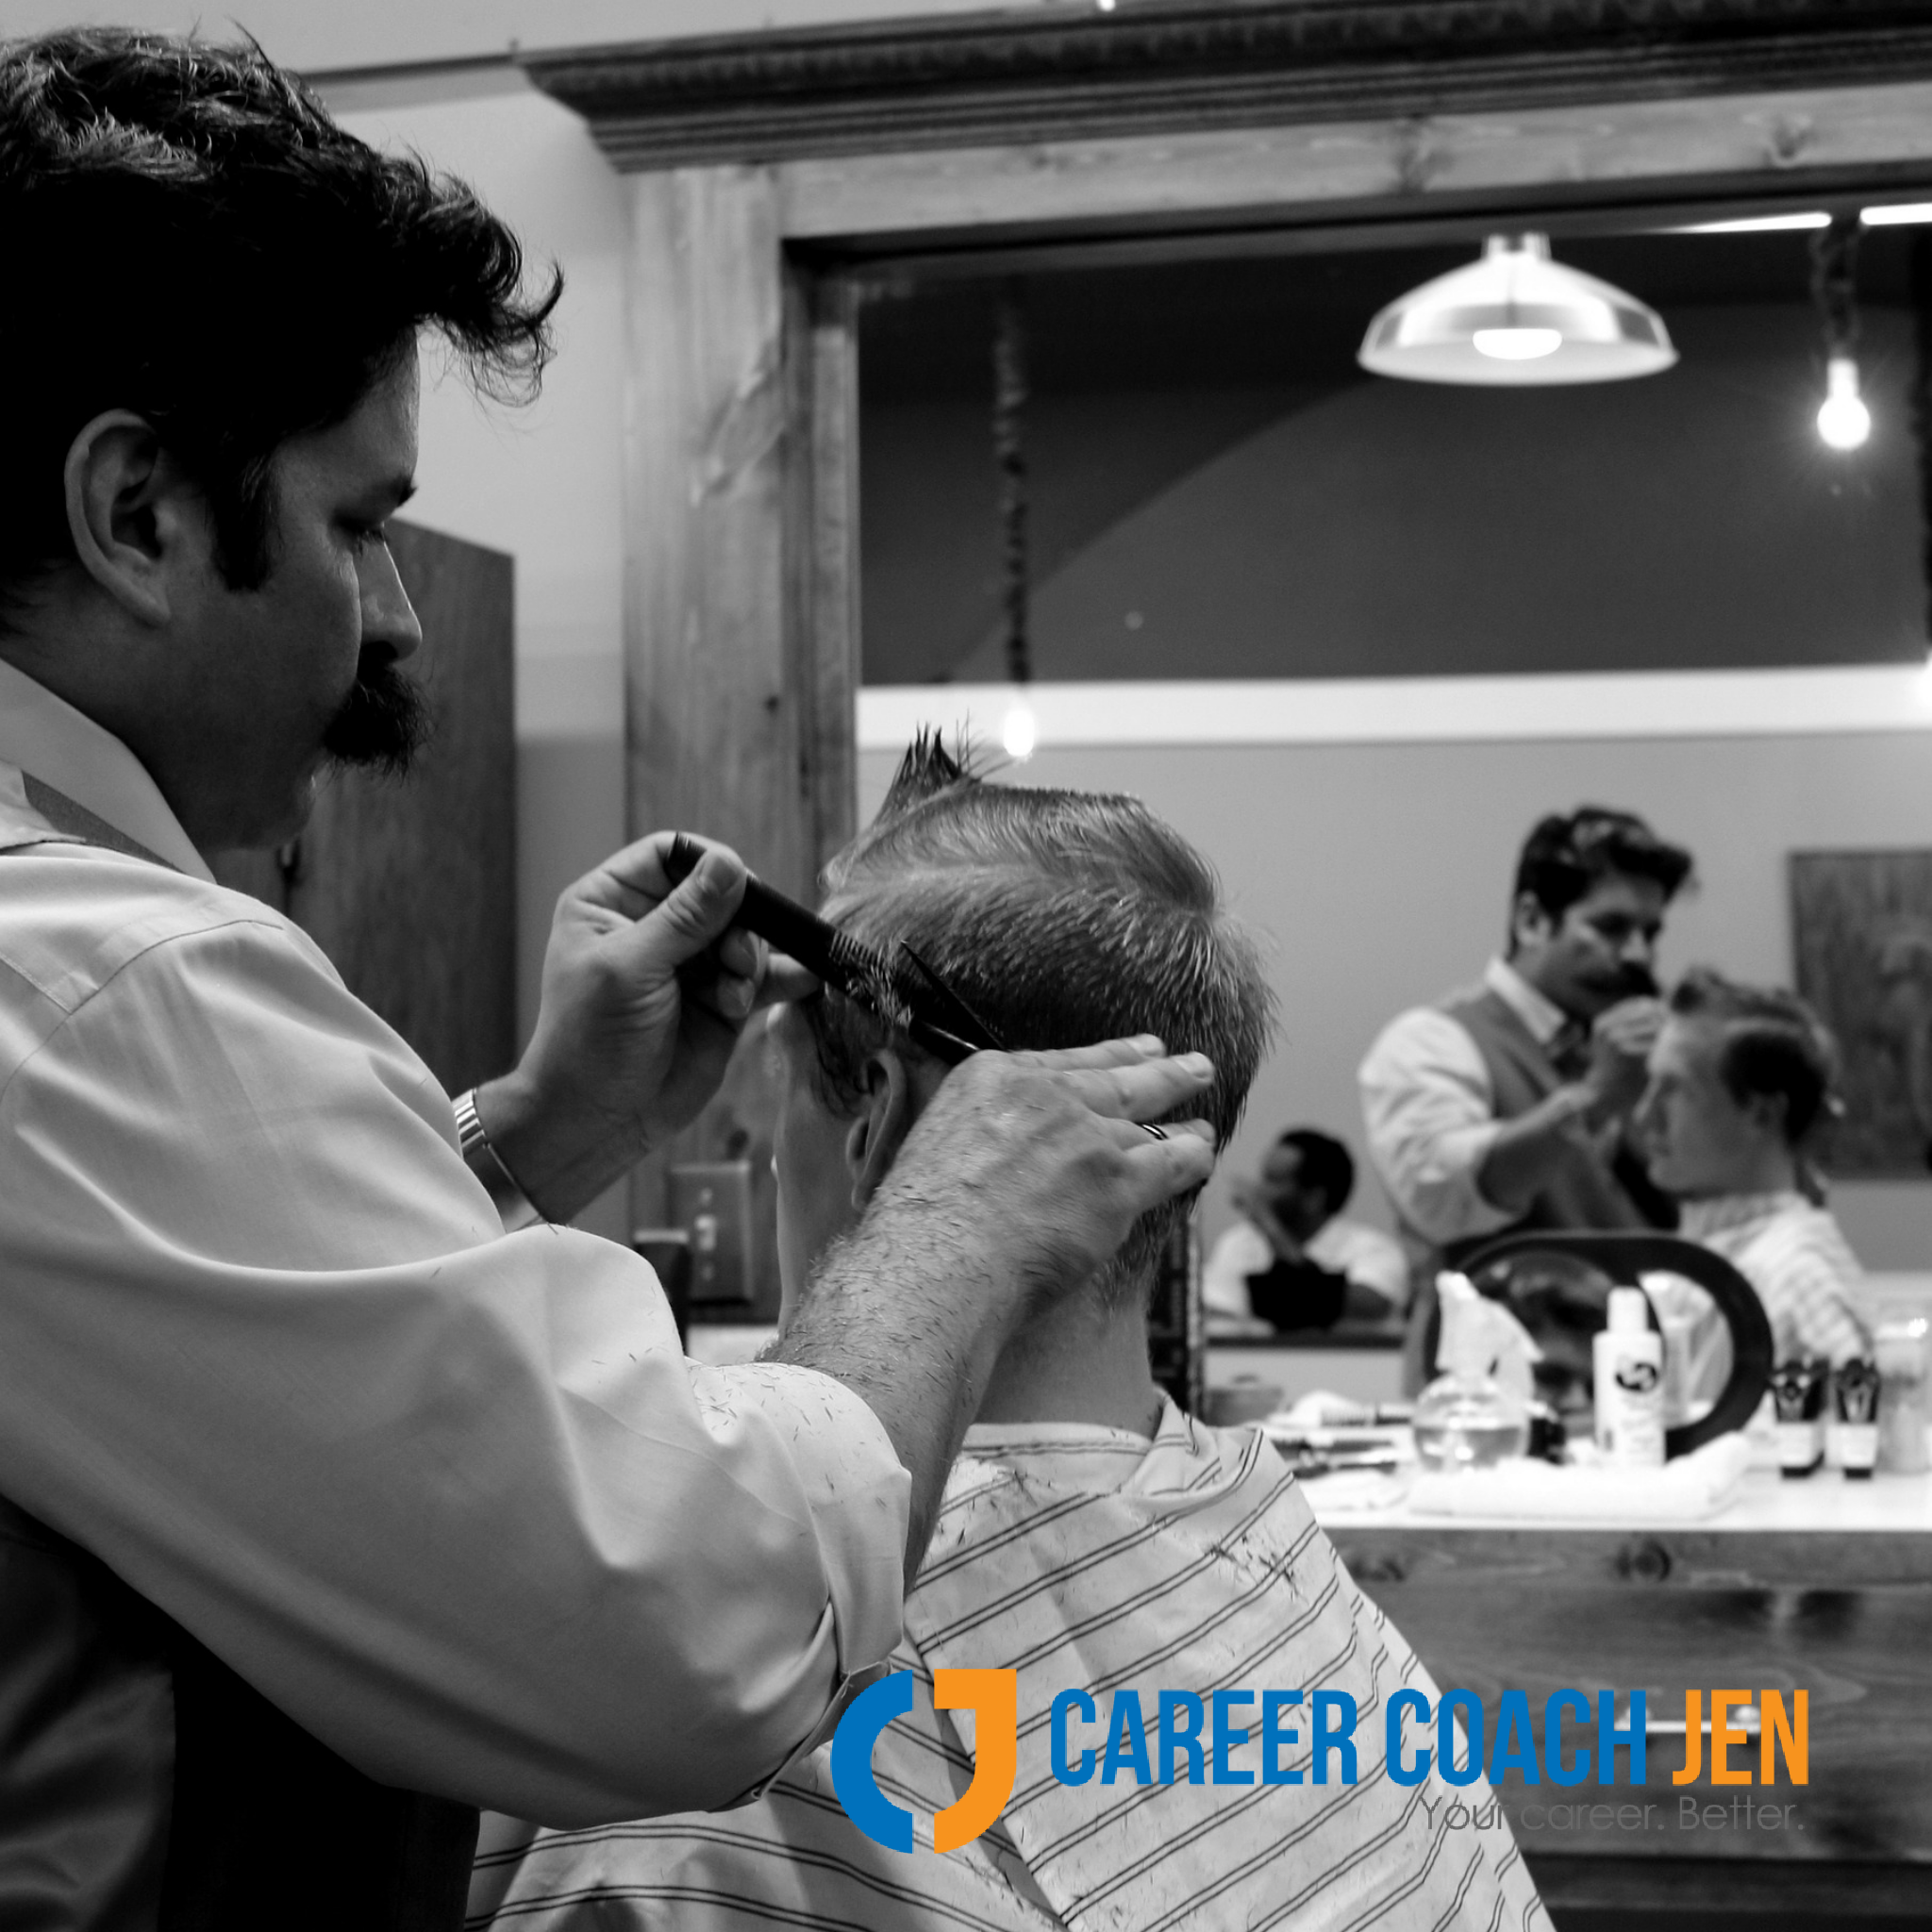 Hairstyles and Personal Brand — Career Coach Jen